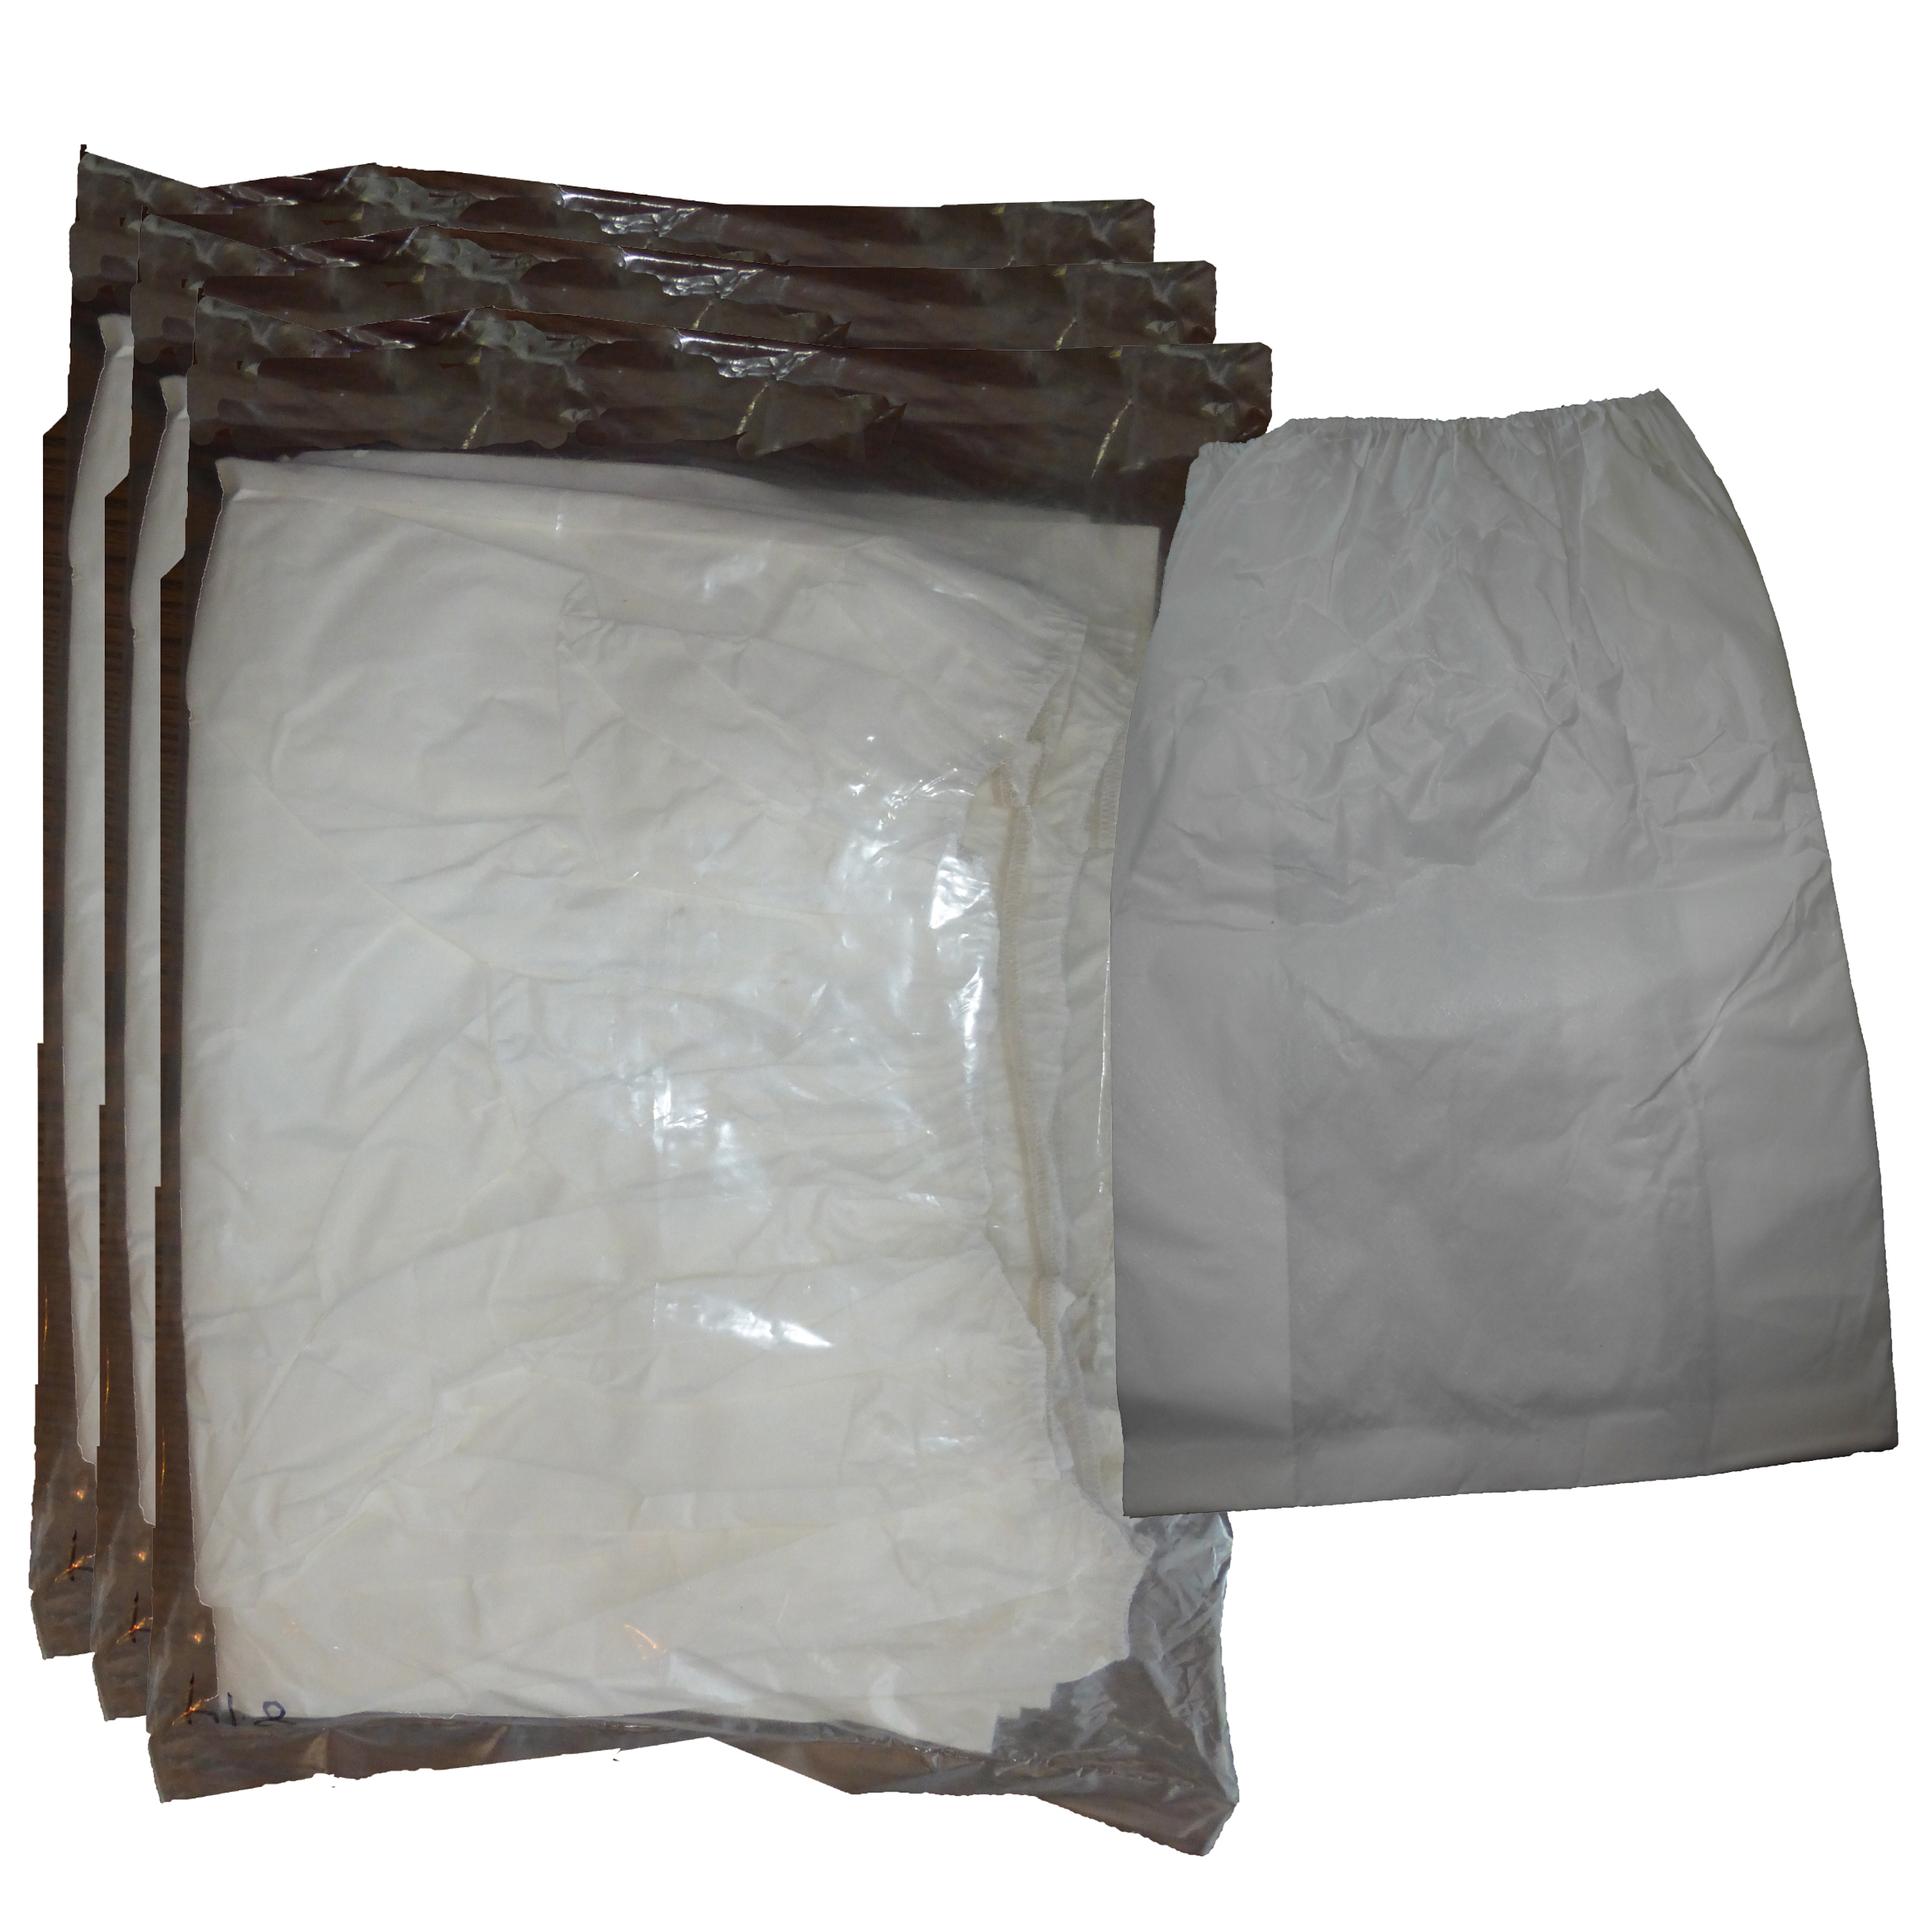 15 Modern Day/Flomaster Central Vacuum System Bags 721H